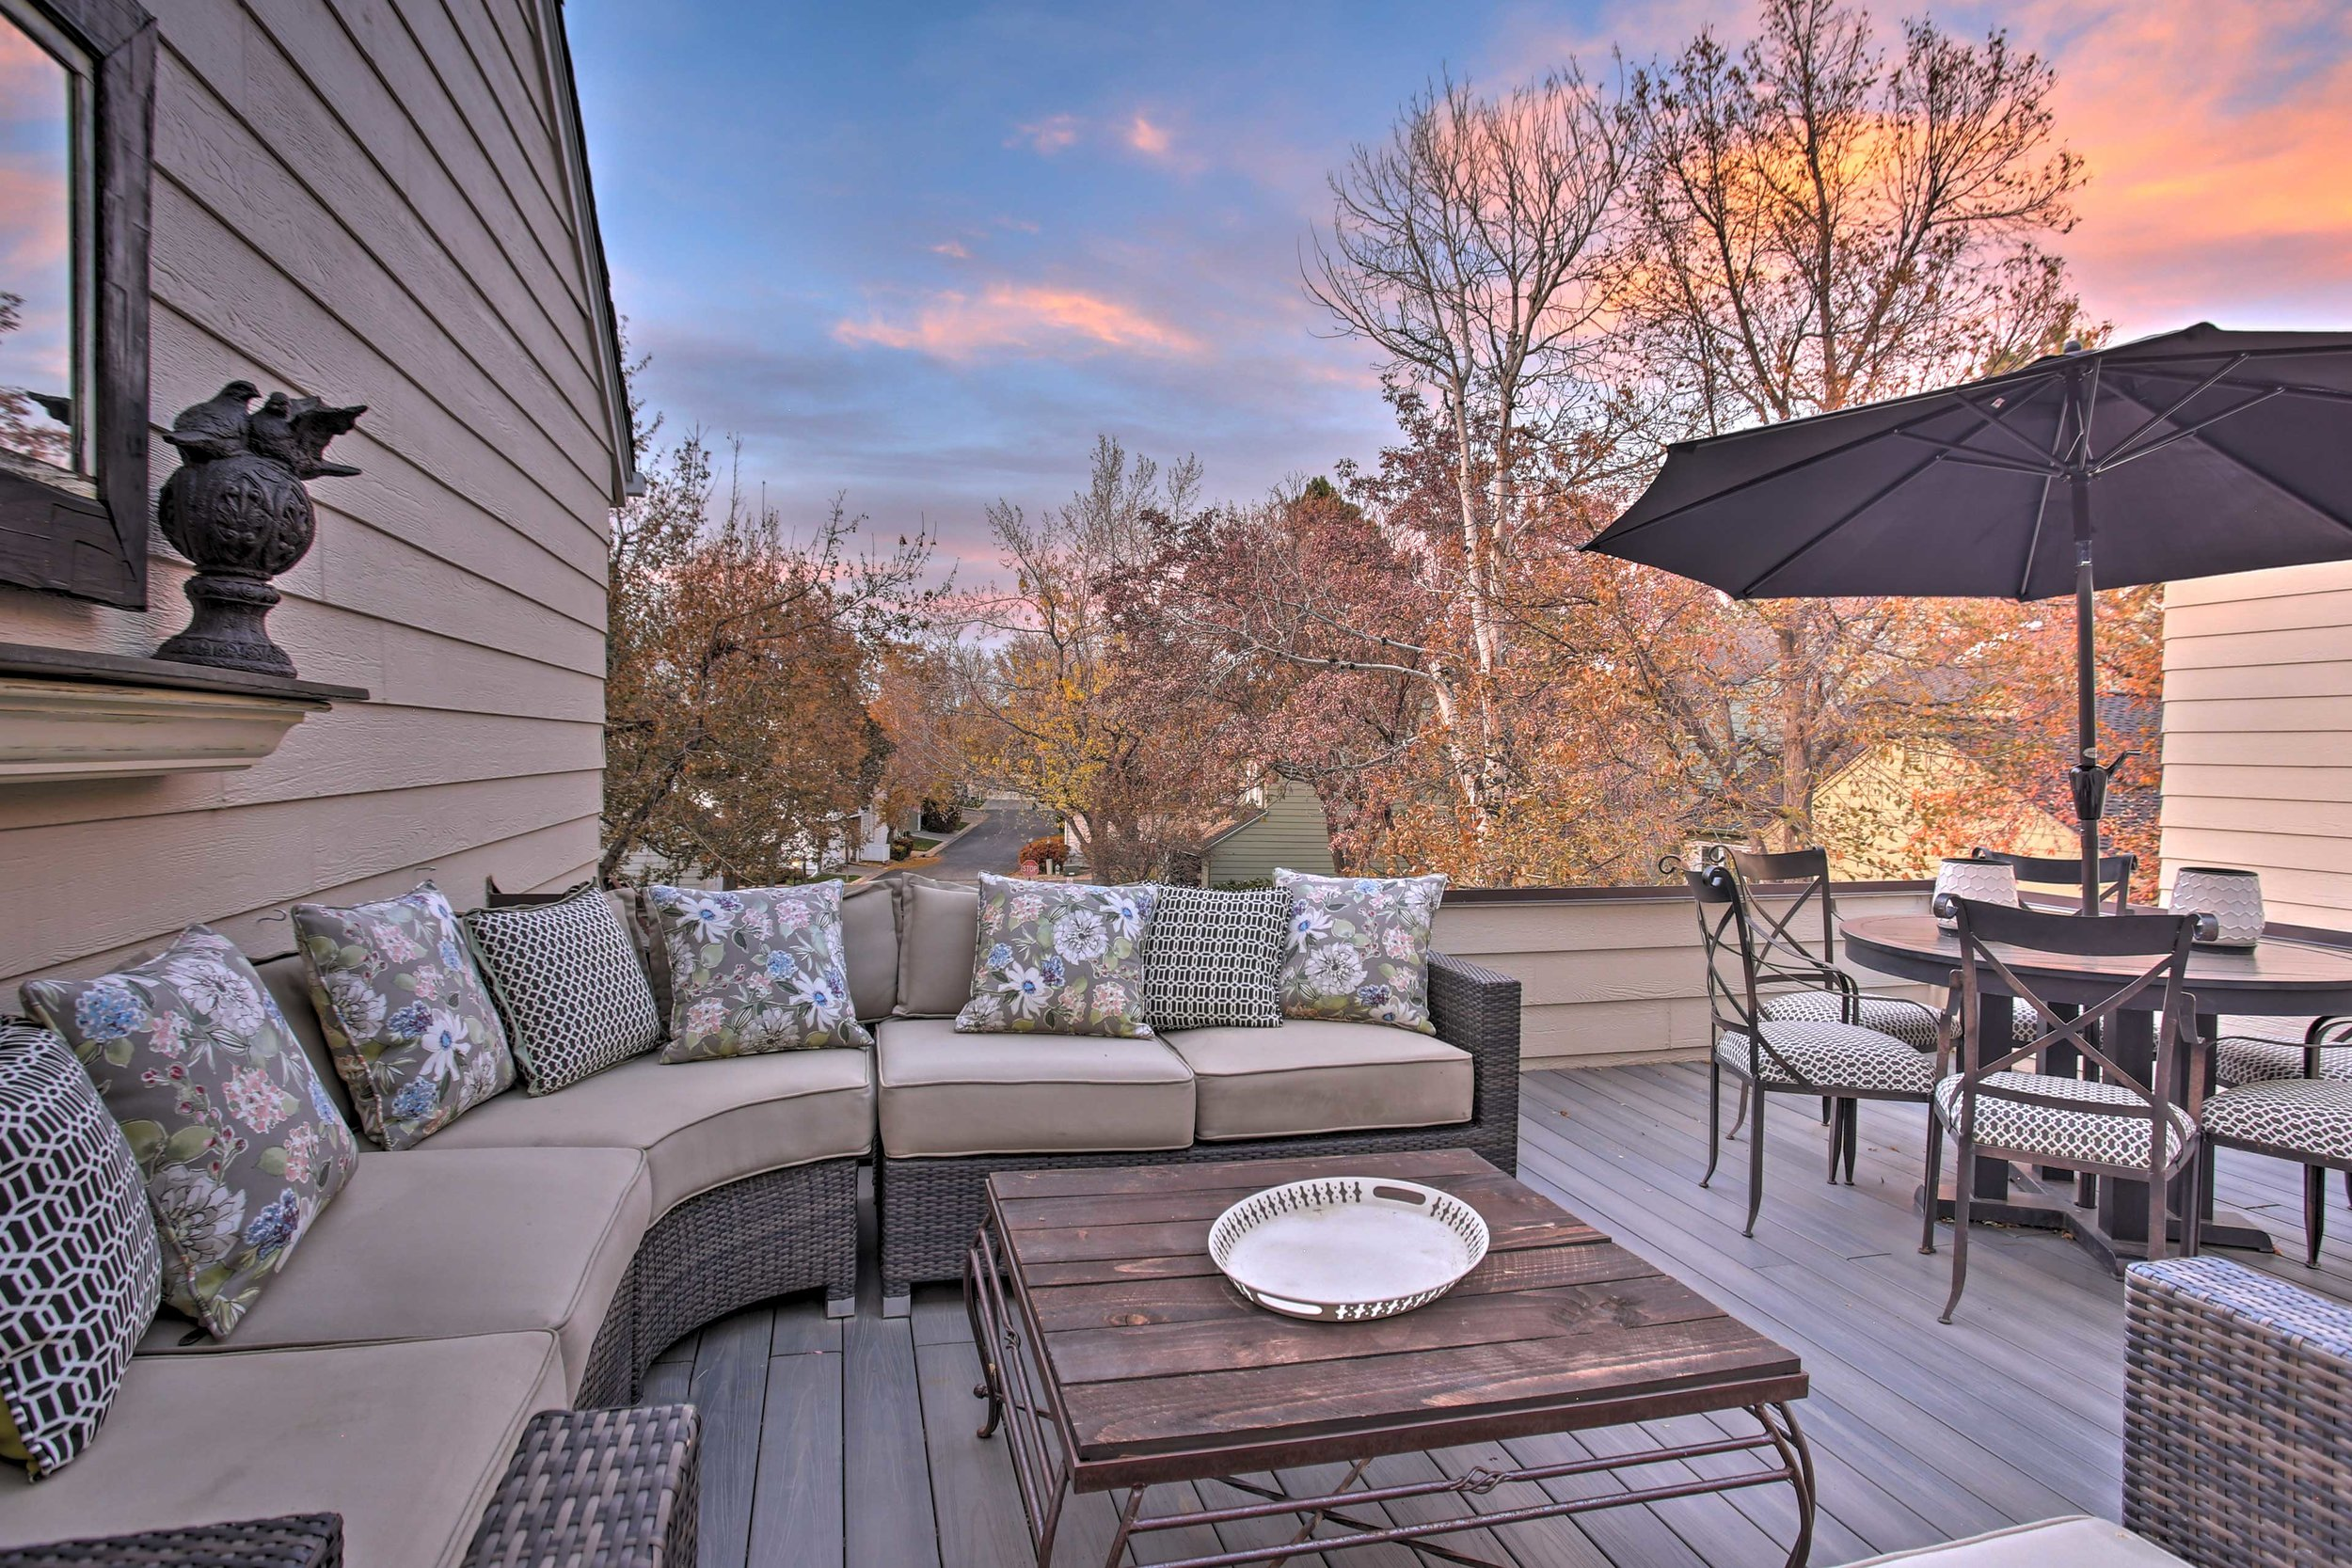 Denver Real Estate Photography Liberato03.jpg